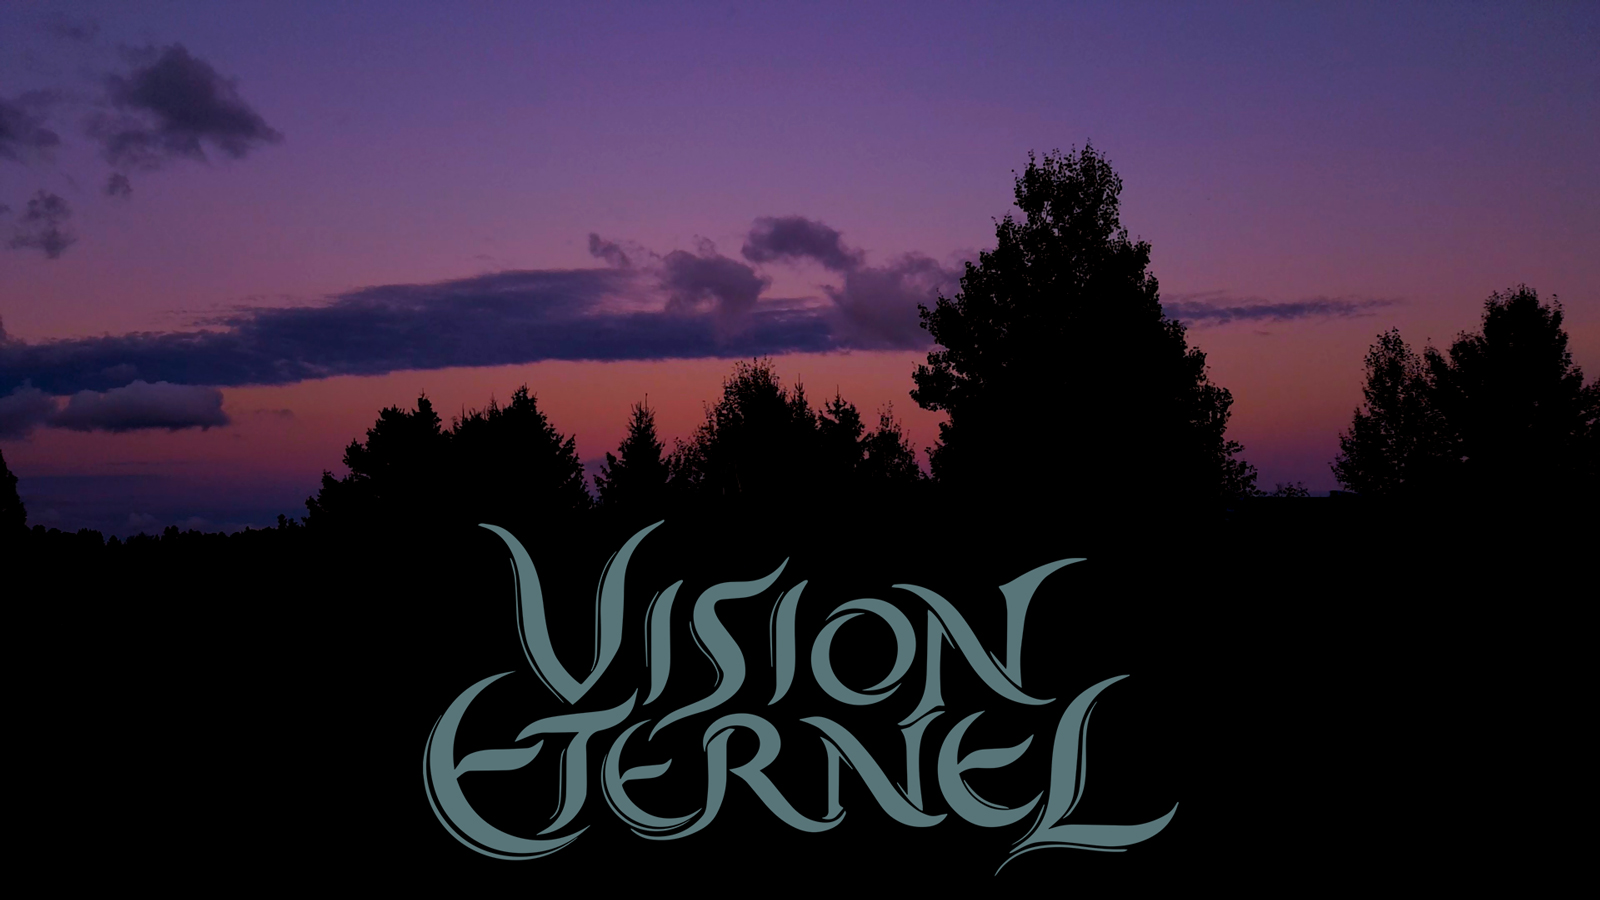 Vision Éternel Is Now Vision Eternel